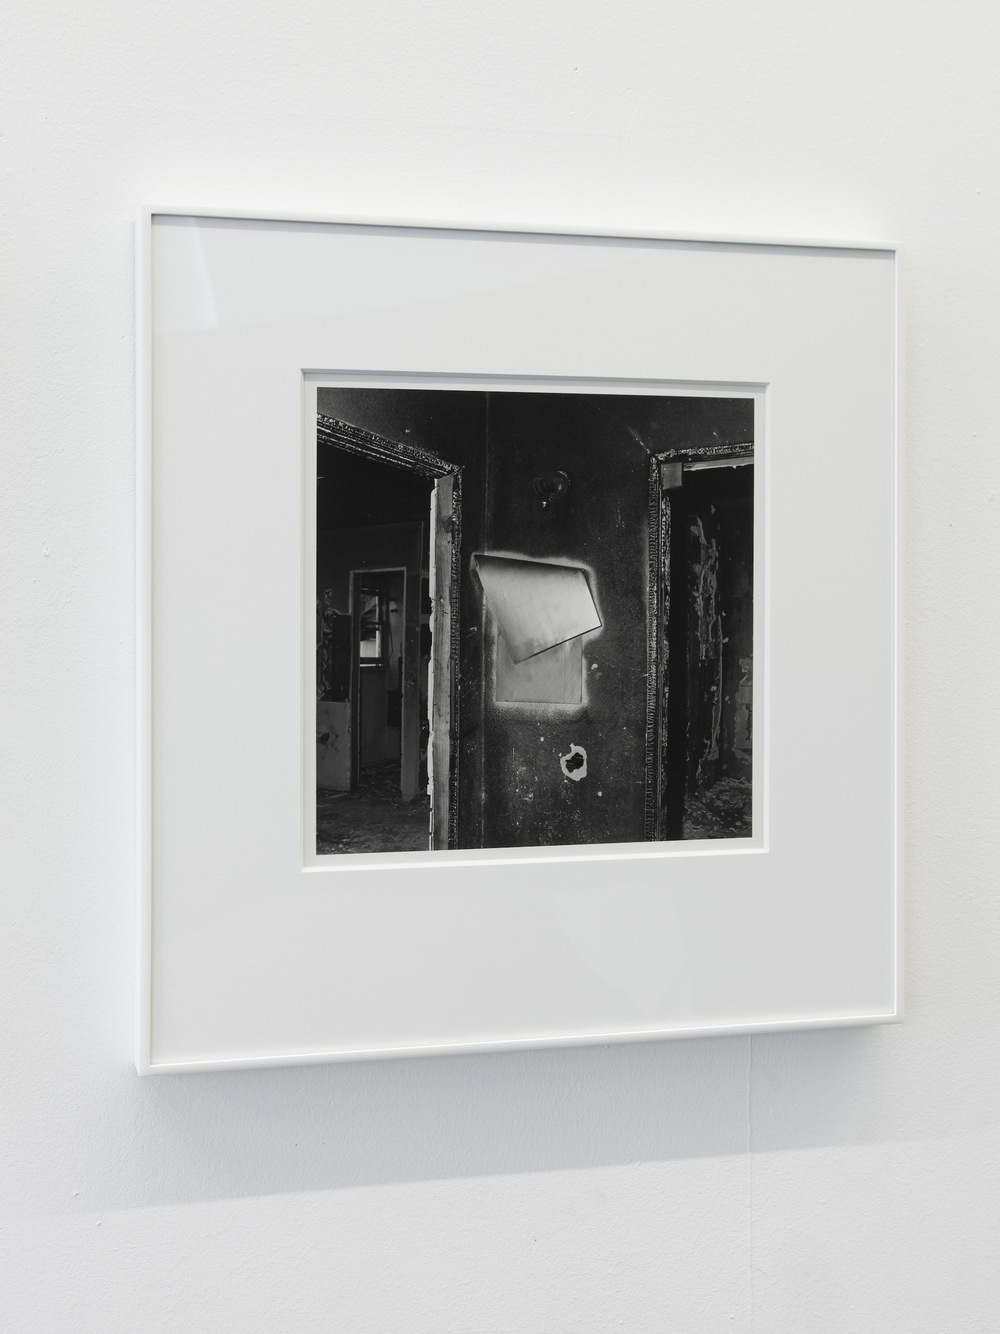 John Divola, from the series Vandalism, 1973-73. Archivally processed B&W photograph, 14 x 14 inches. Courtesy of the artist, Gallery Luisotti Los Angeles and Laura Bartlett Gallery London.